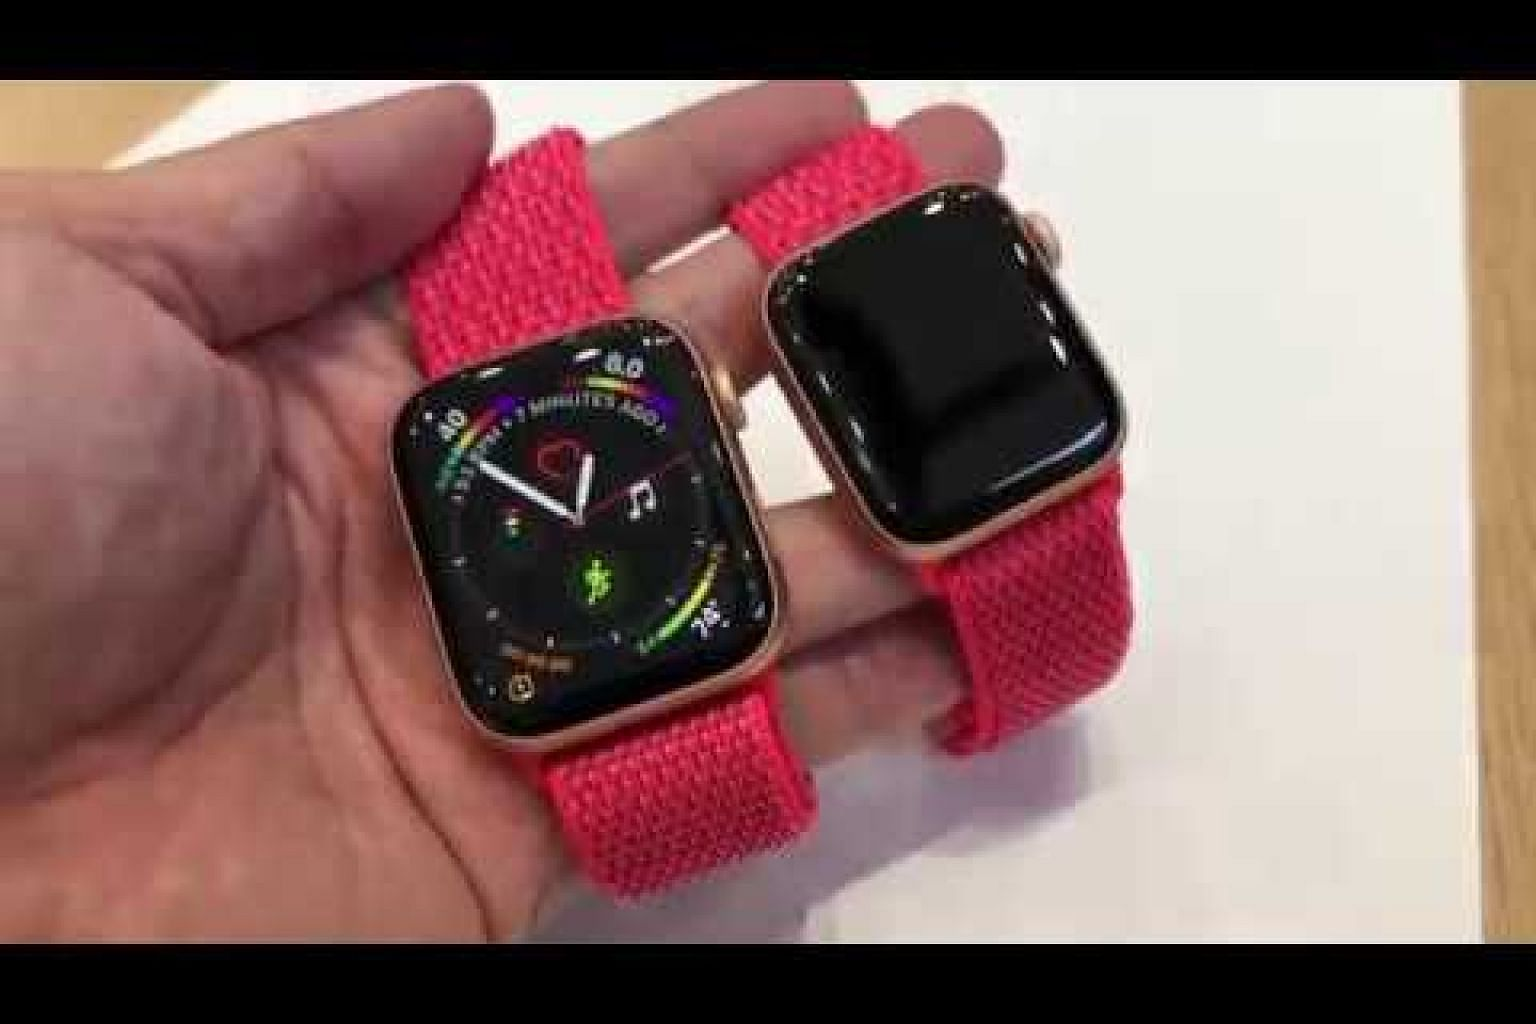 Hands-on video of Apple Watch Series 4